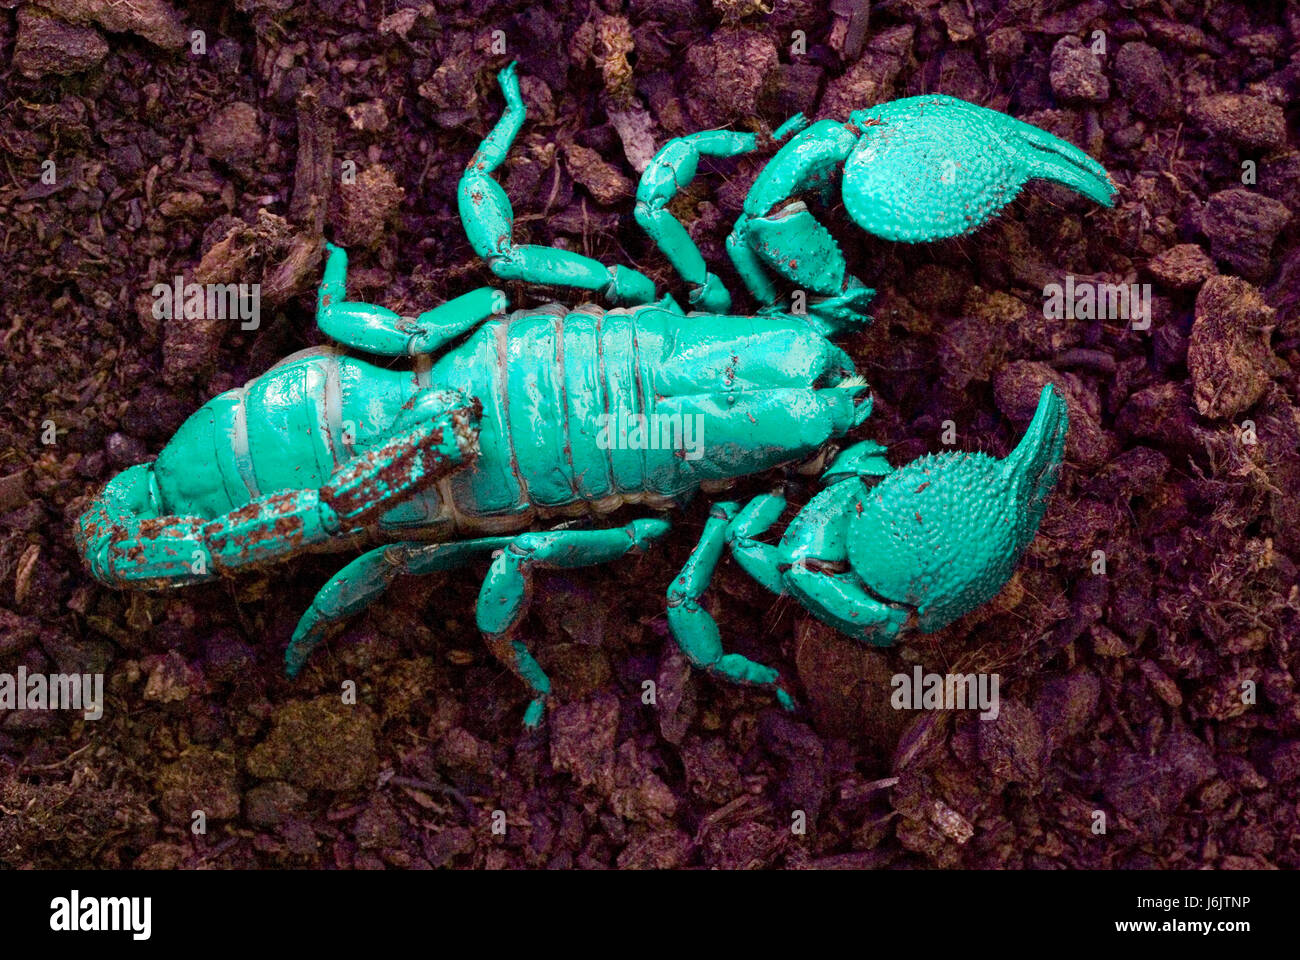 Imperial Scorpion under ultra-violet light - Stock Image